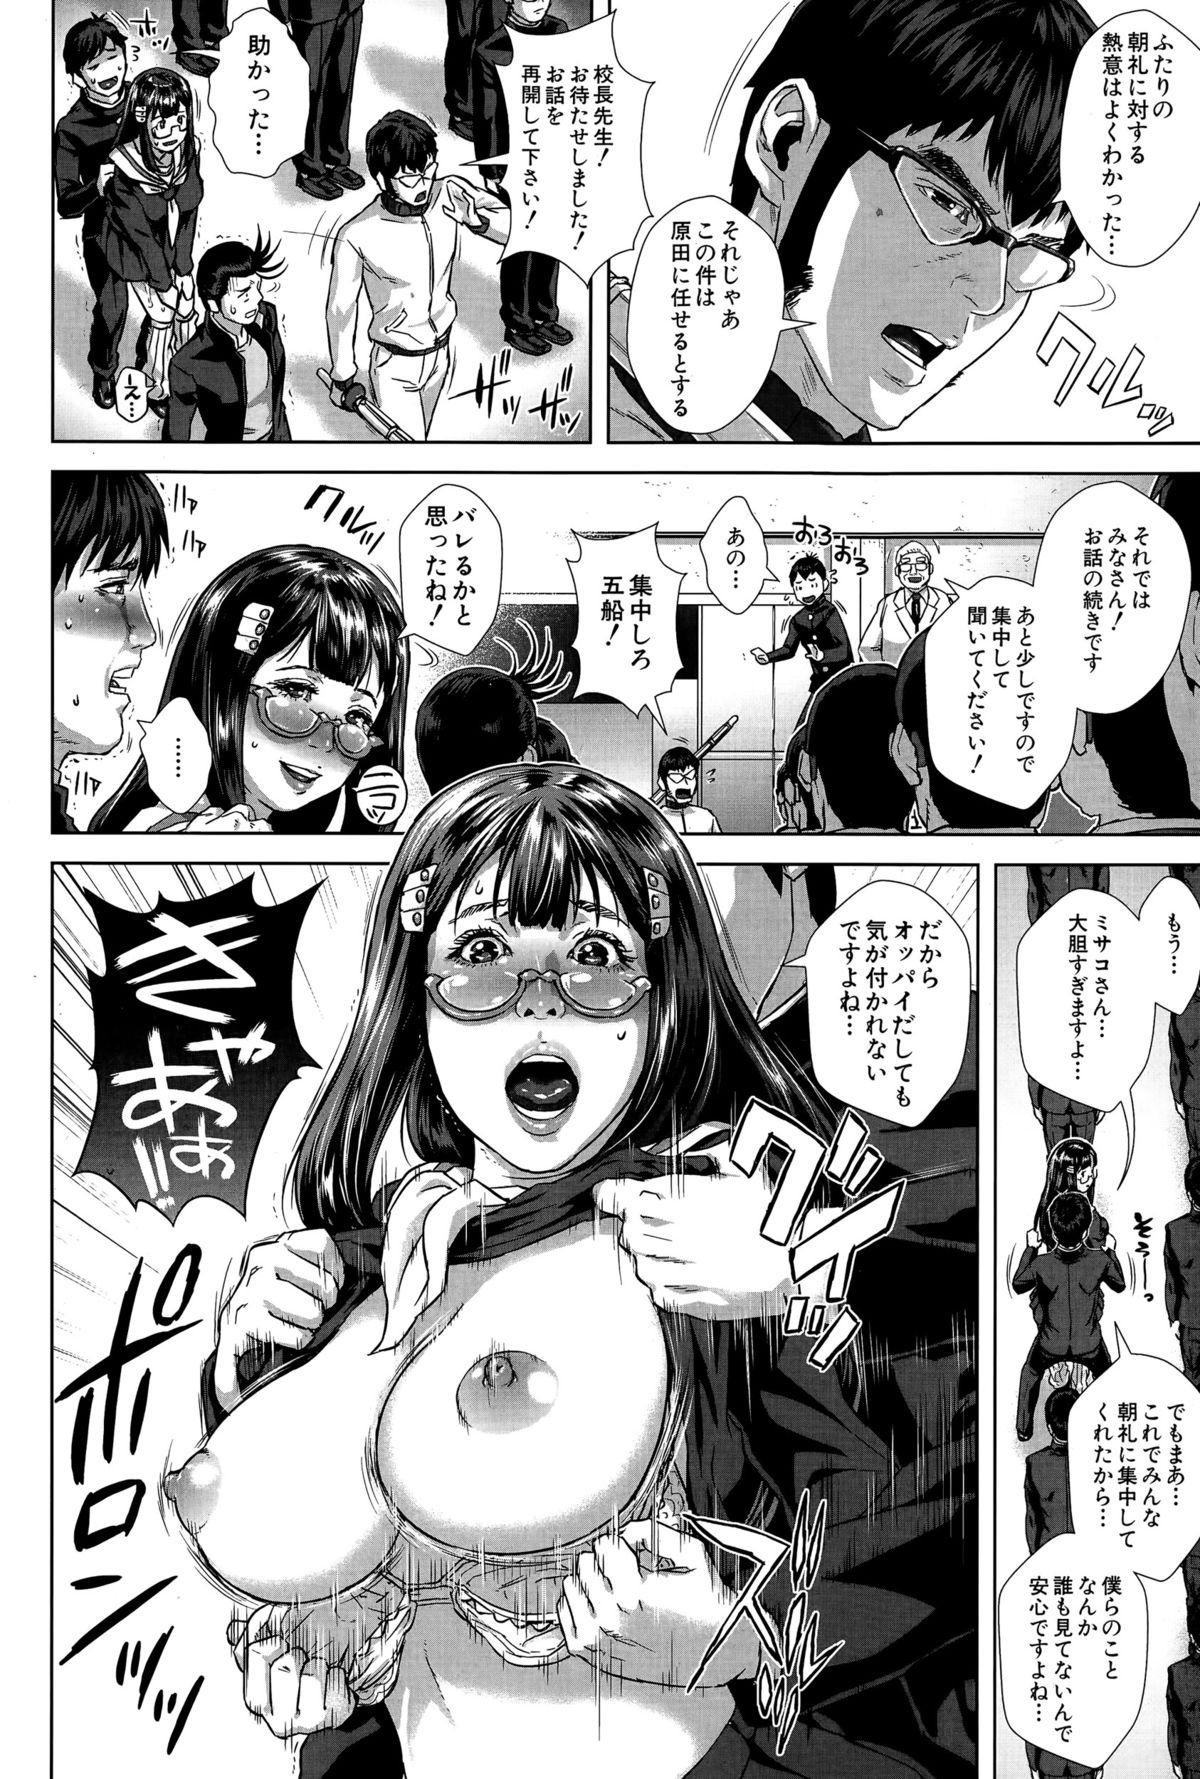 BUSTER COMIC 2015-07 151